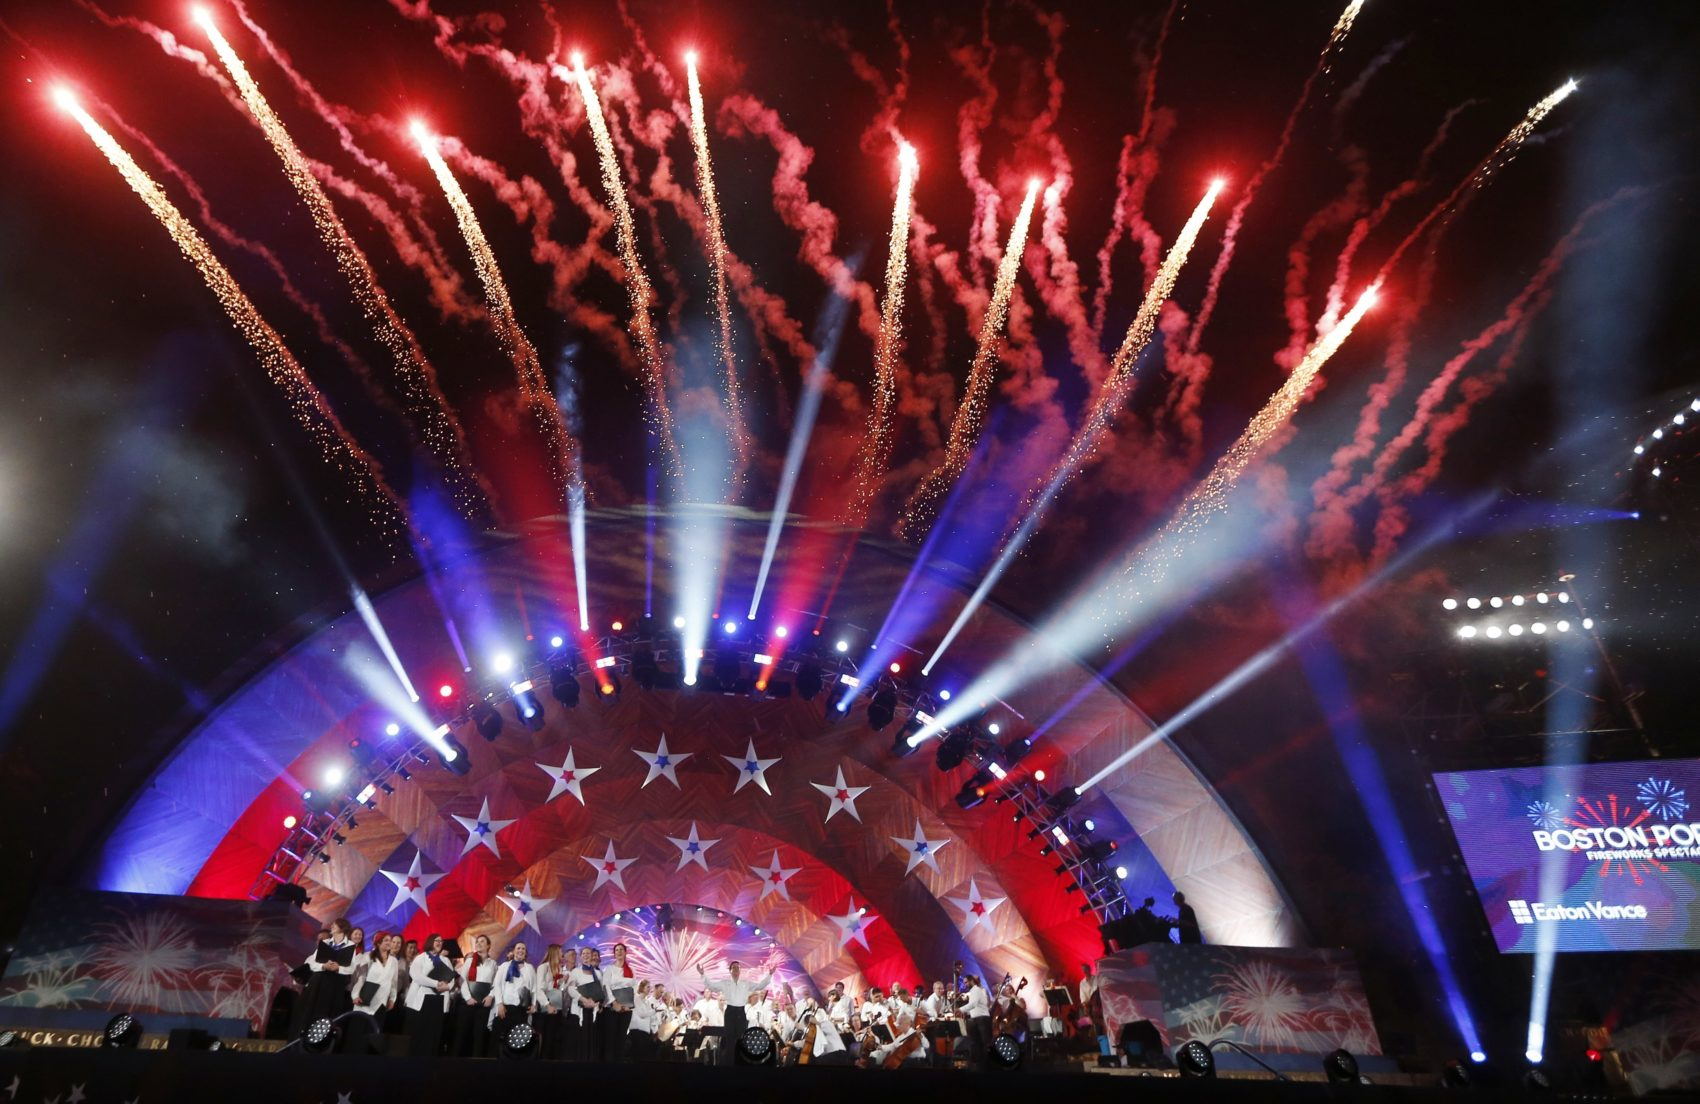 Fireworks explode over the Hatch Shell during rehearsal for the Boston Pops Fireworks Spectacular last year. (Michael Dwyer/AP)